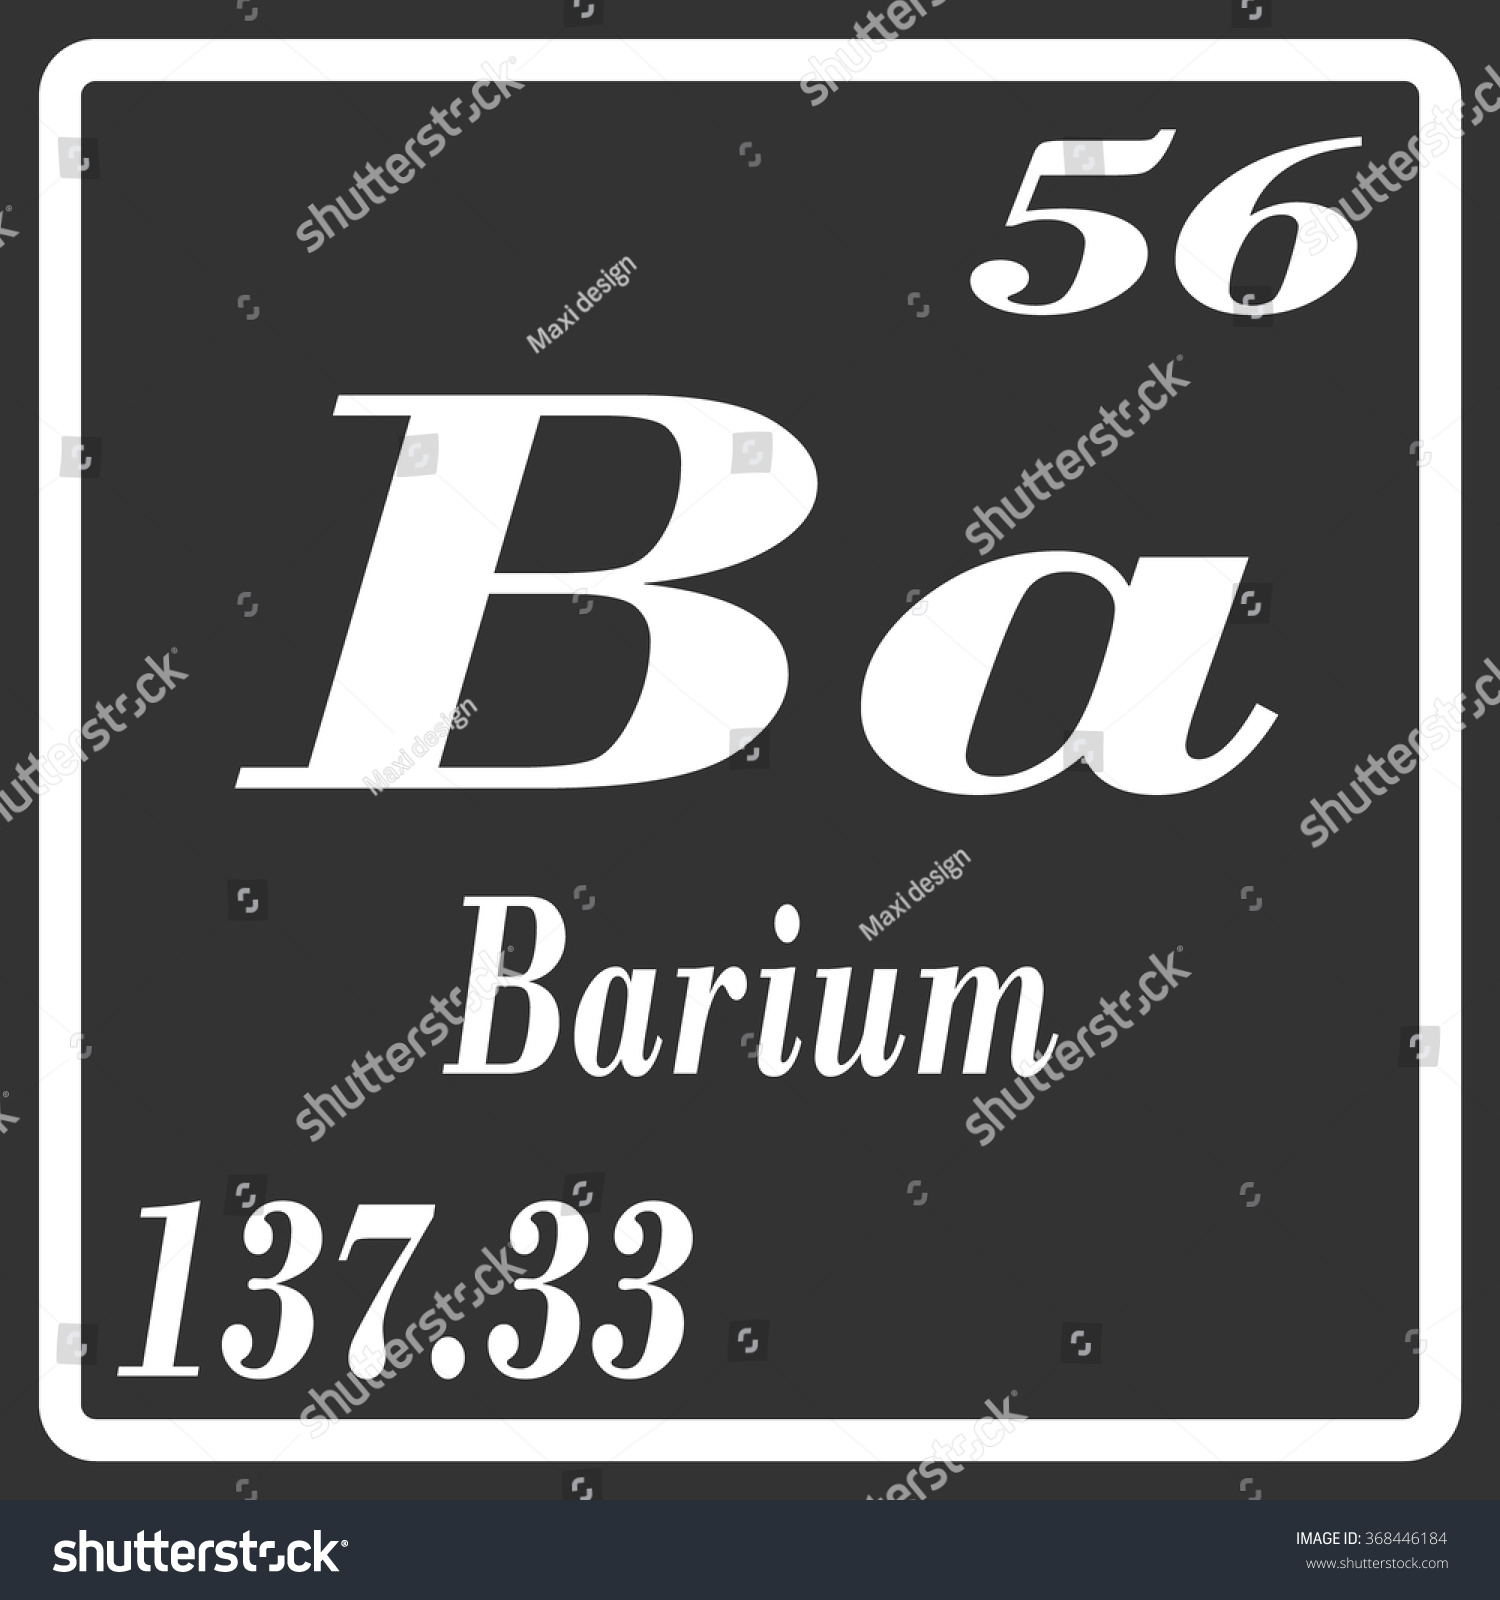 Periodic table elements barium stock vector 368446184 shutterstock periodic table of elements barium gamestrikefo Image collections